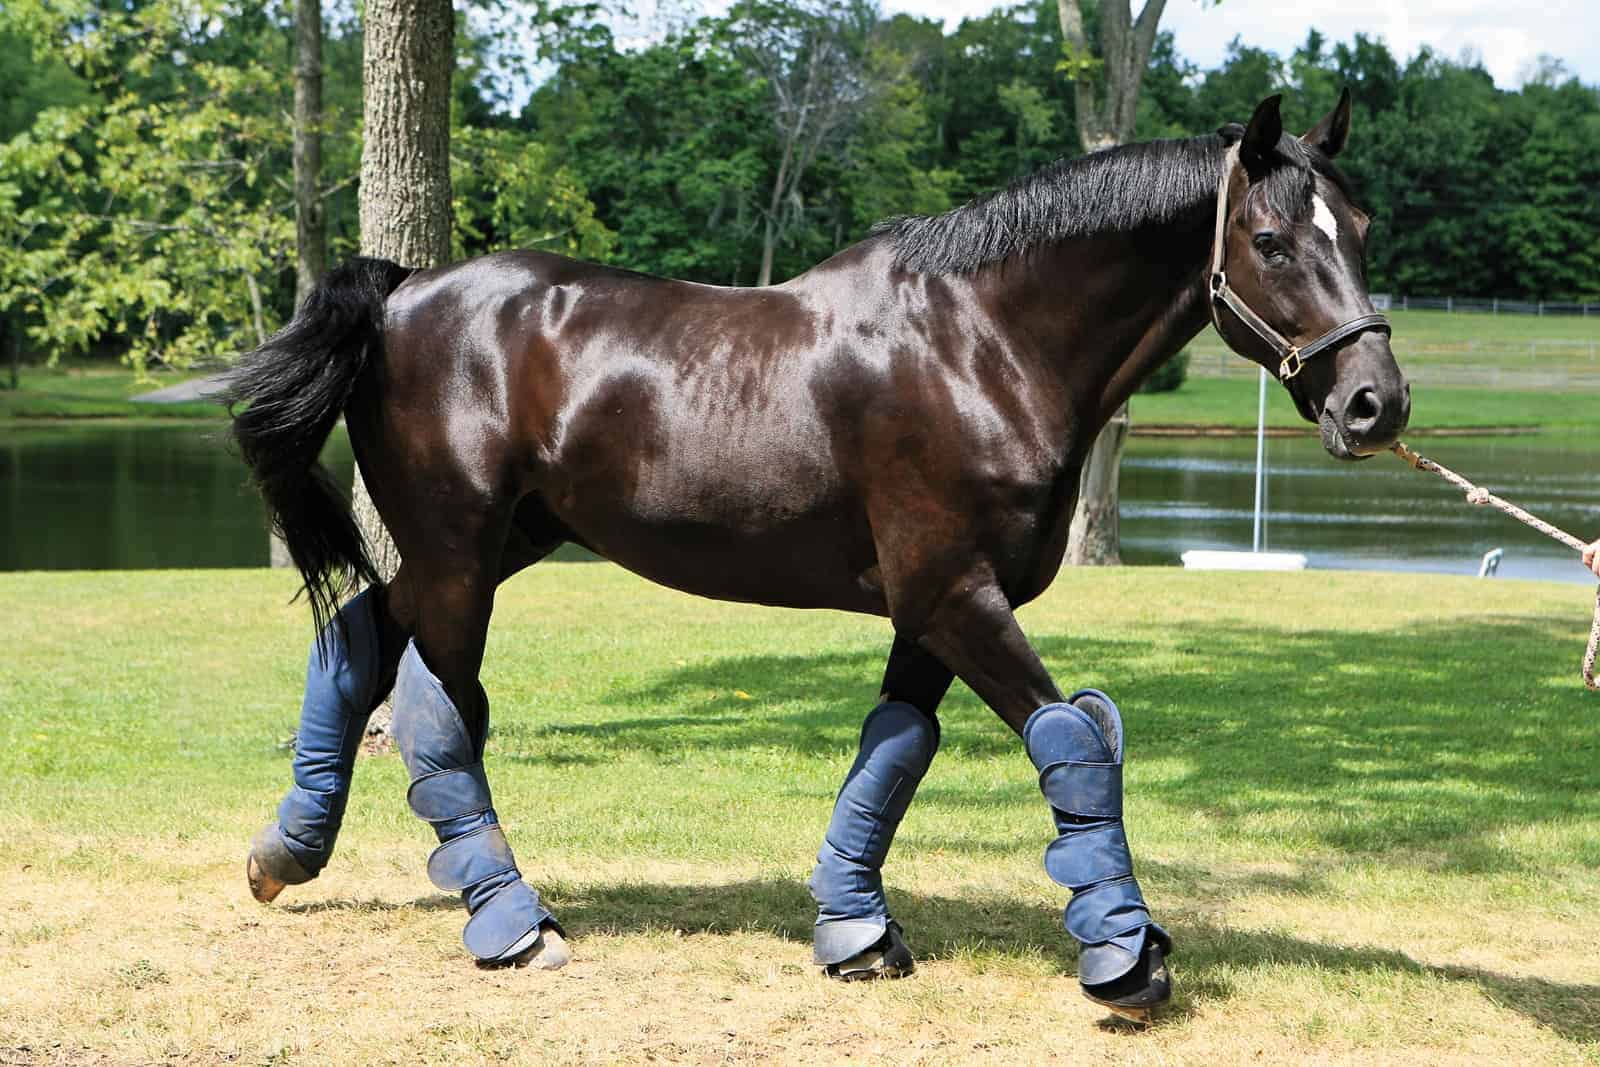 Leg and Hoof Protection – The Horse